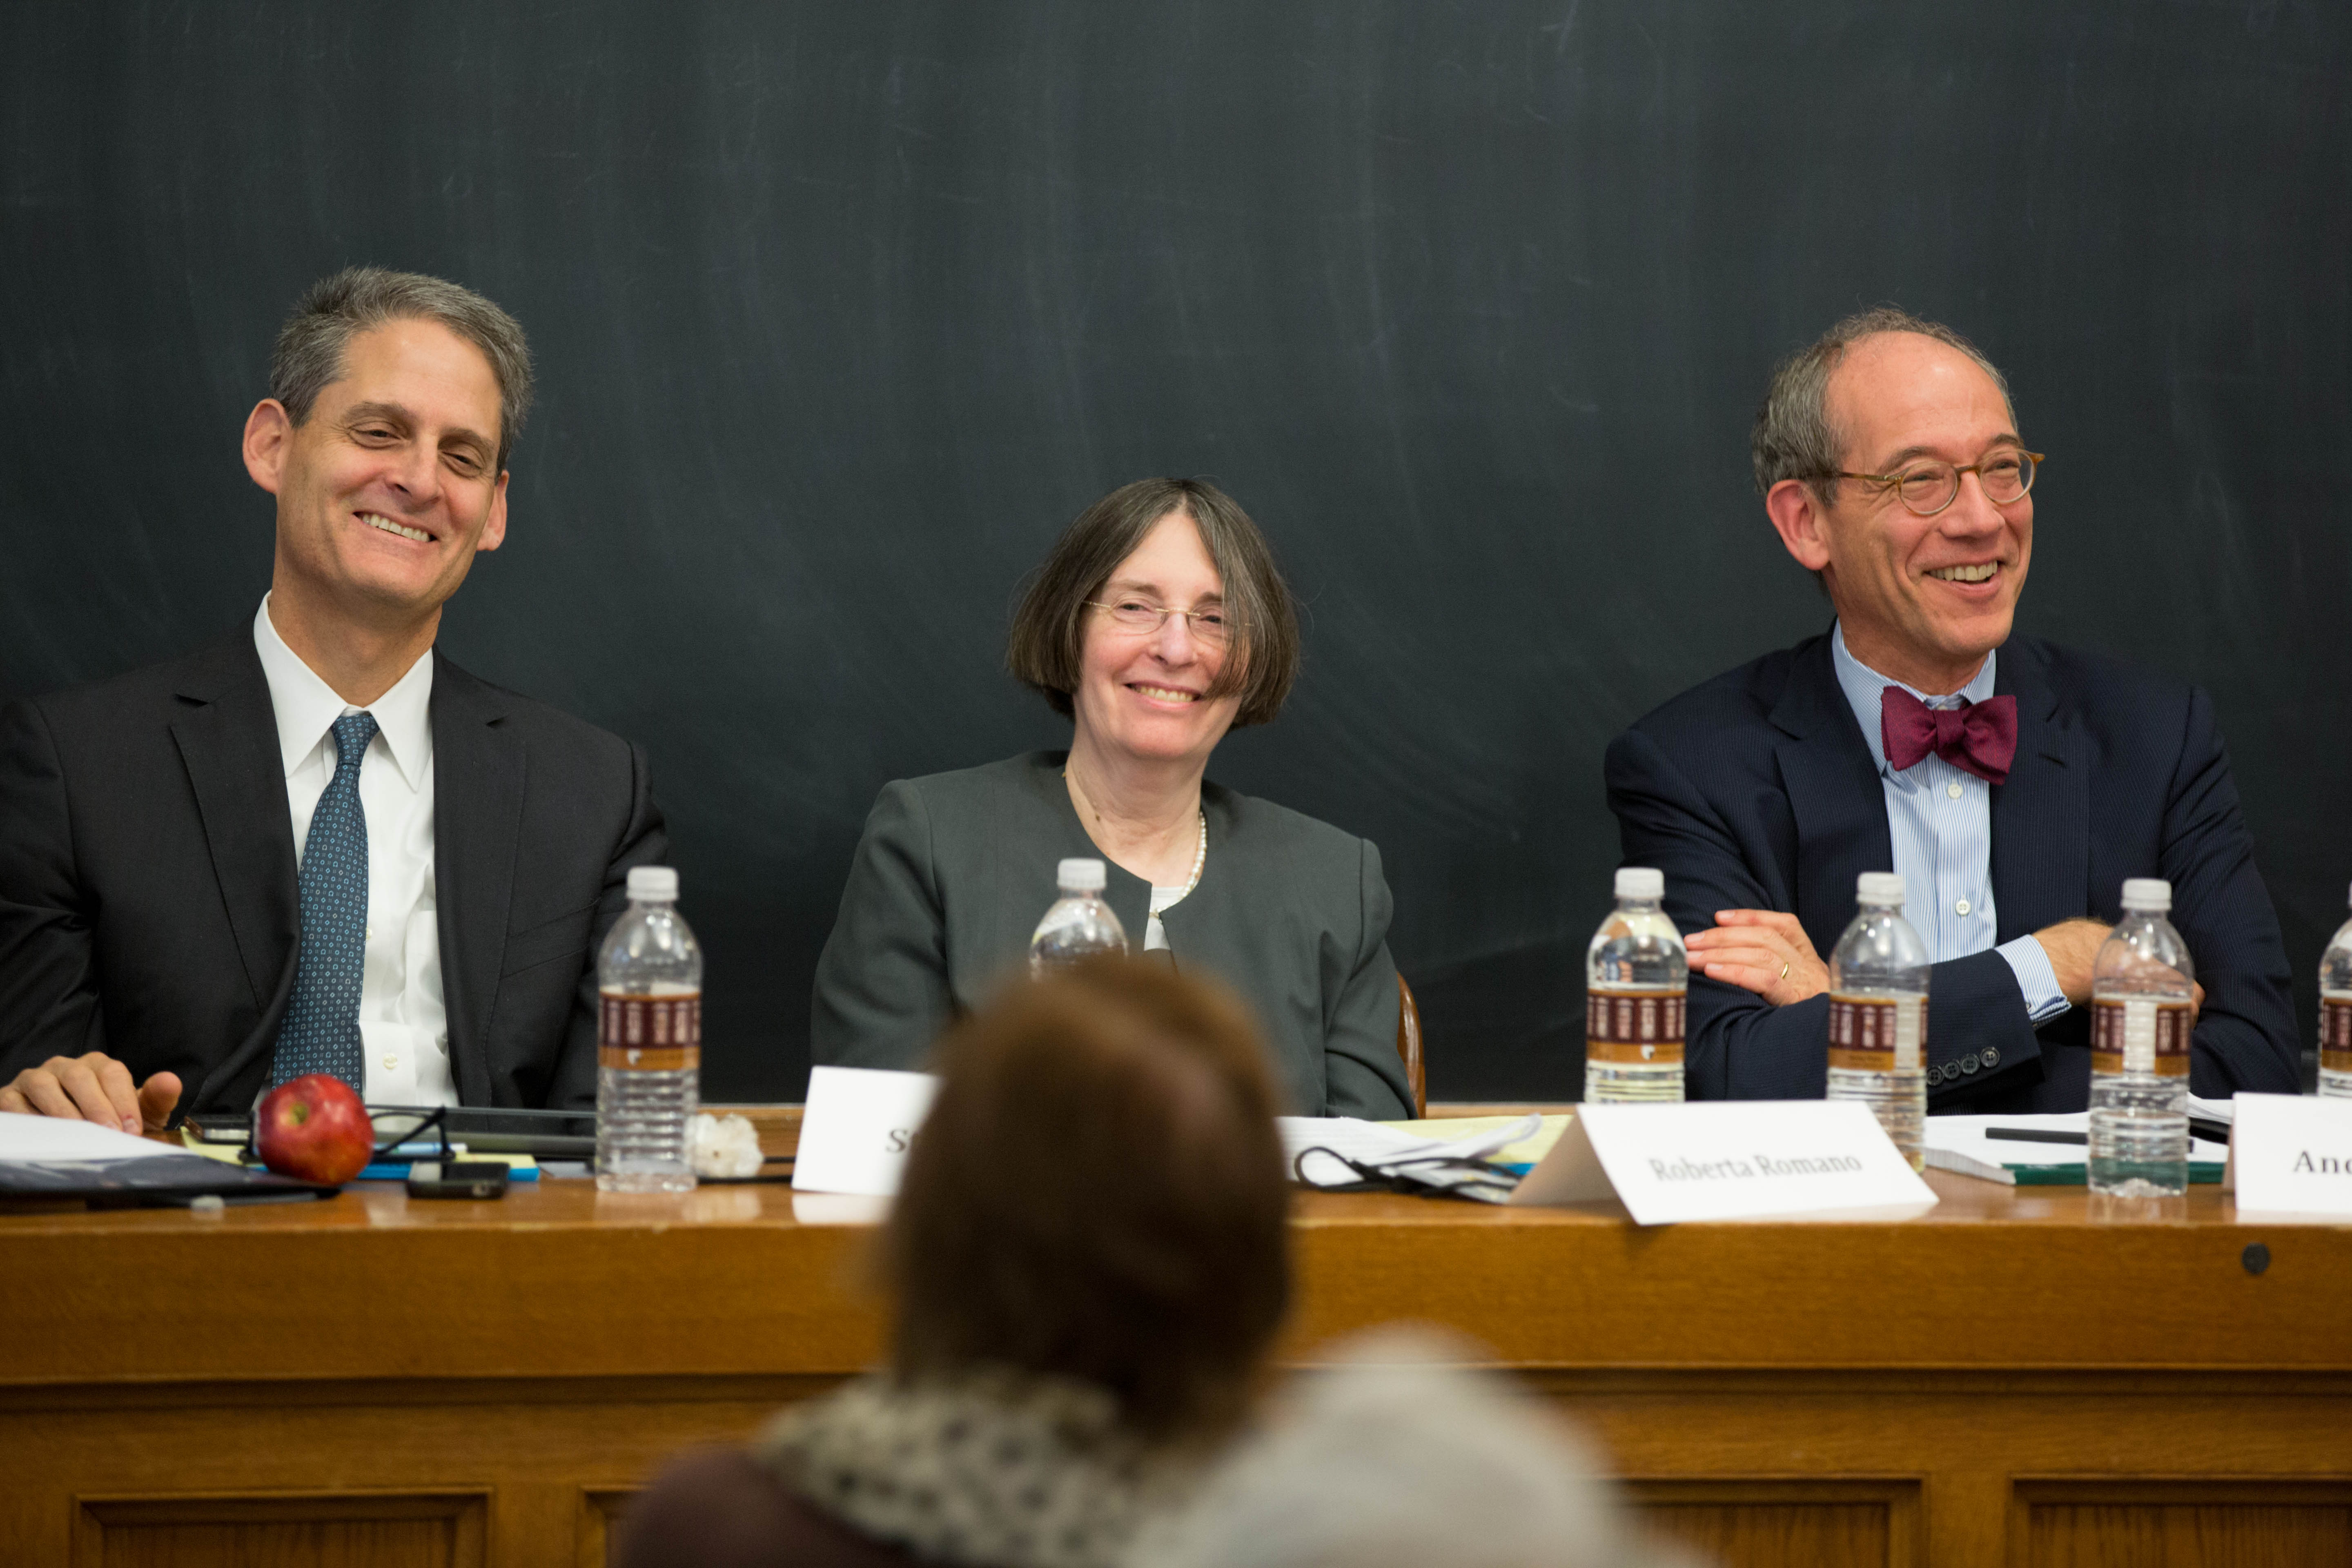 Stephen Cutler '85, YLS Prof. and Center Dir. Roberta Romano '80, and Andrew Levander